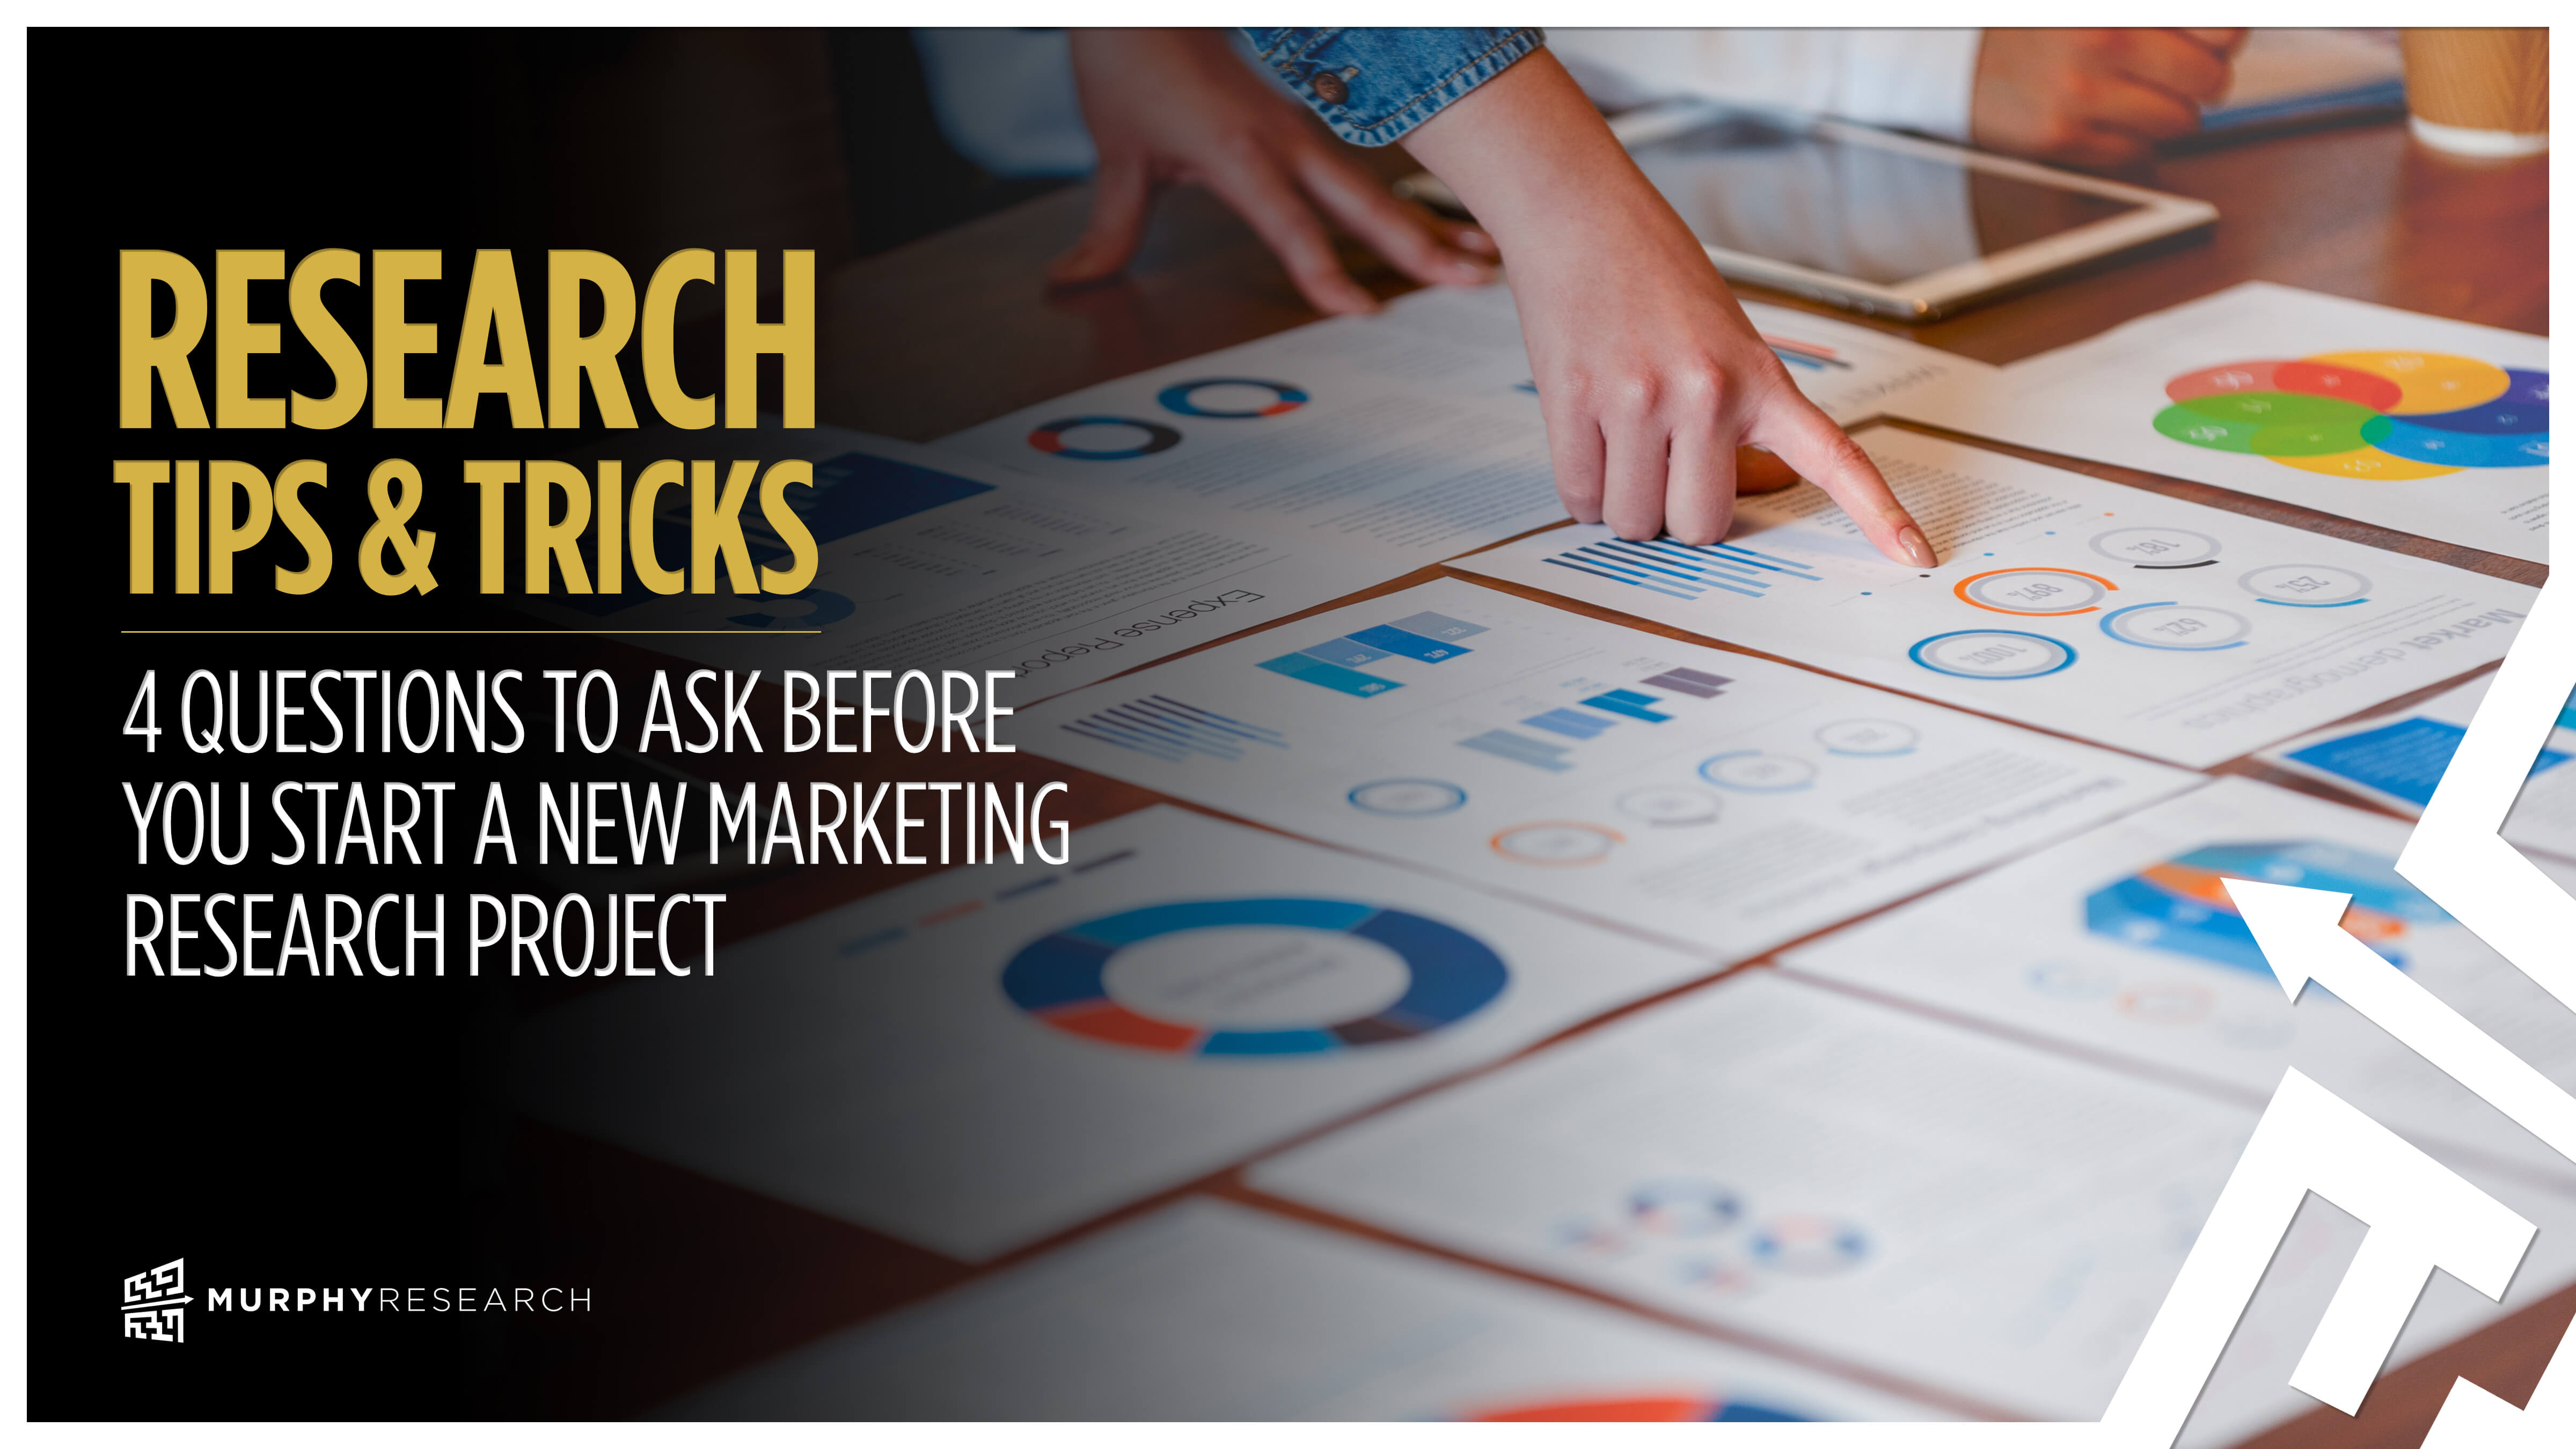 What Marketing Research Projects Are Right for DIY Approaches?